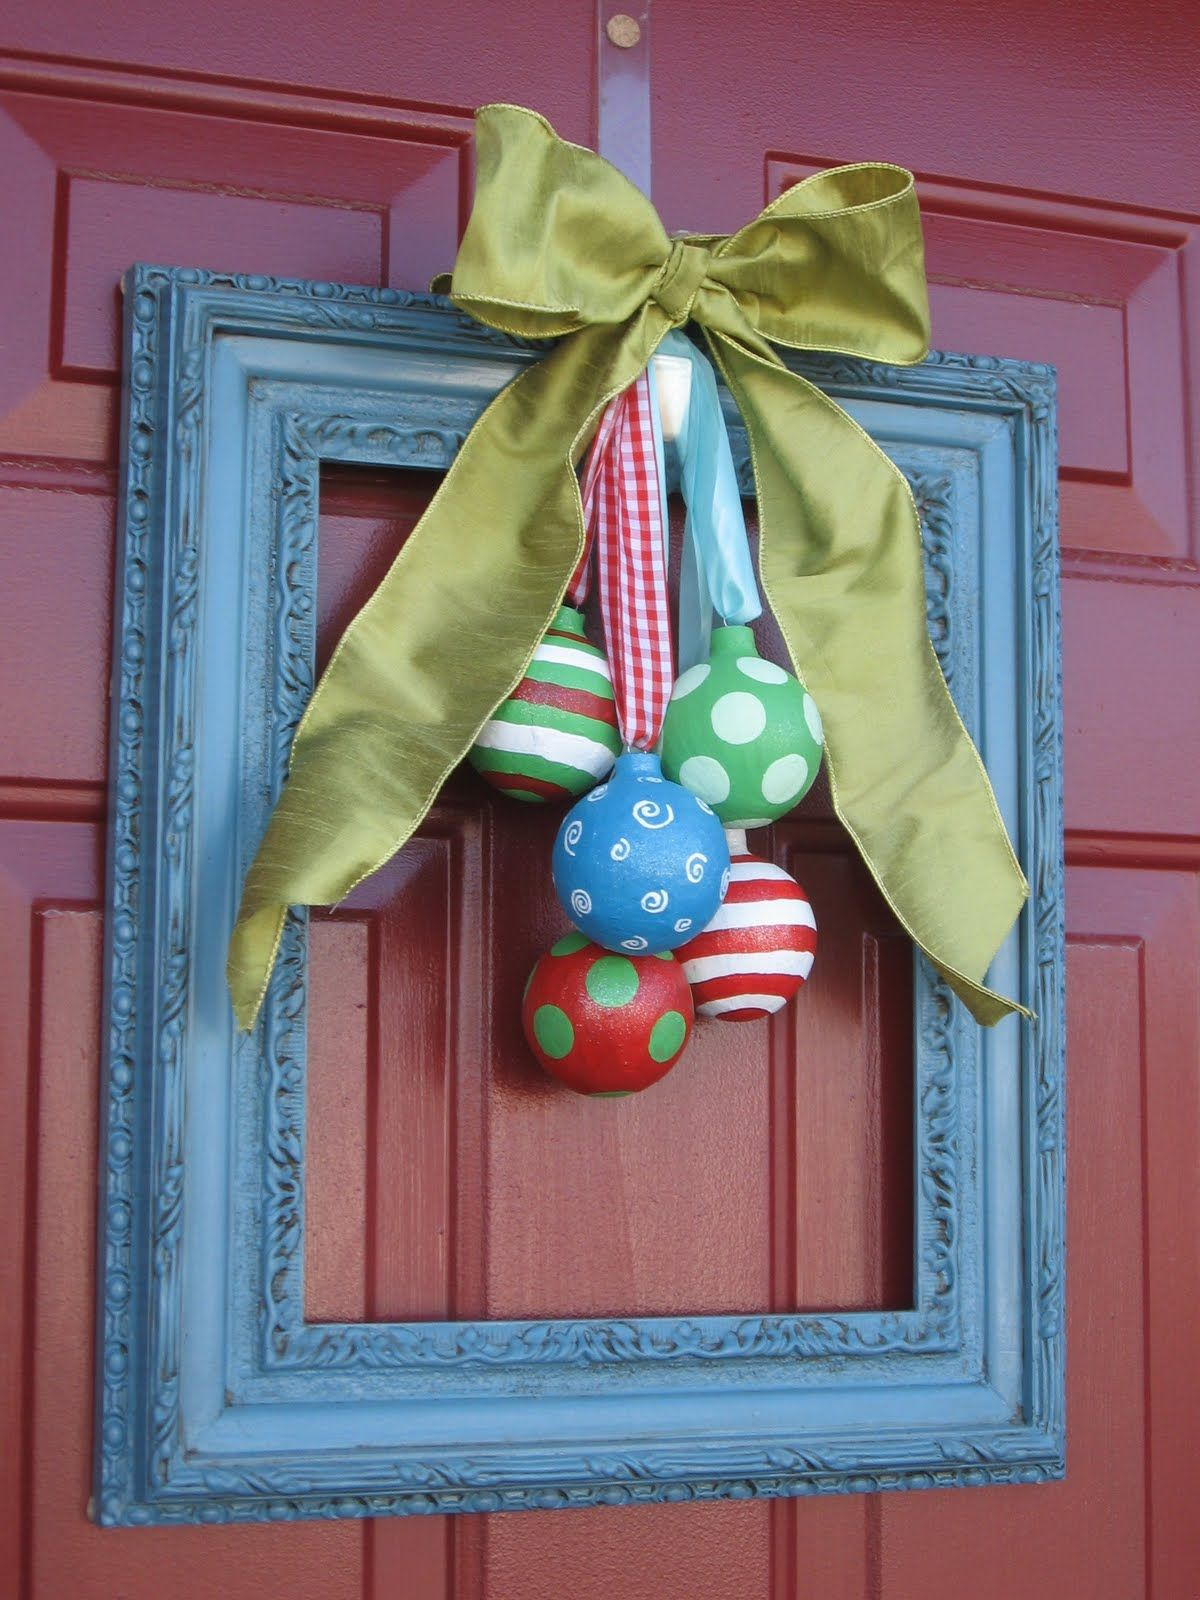 GO to this blog to find directions for these Christmas Paper Mache Ornaments http://www.bluecricketdesign.net/2009/12/chrismas-paper-mache-ornaments.html